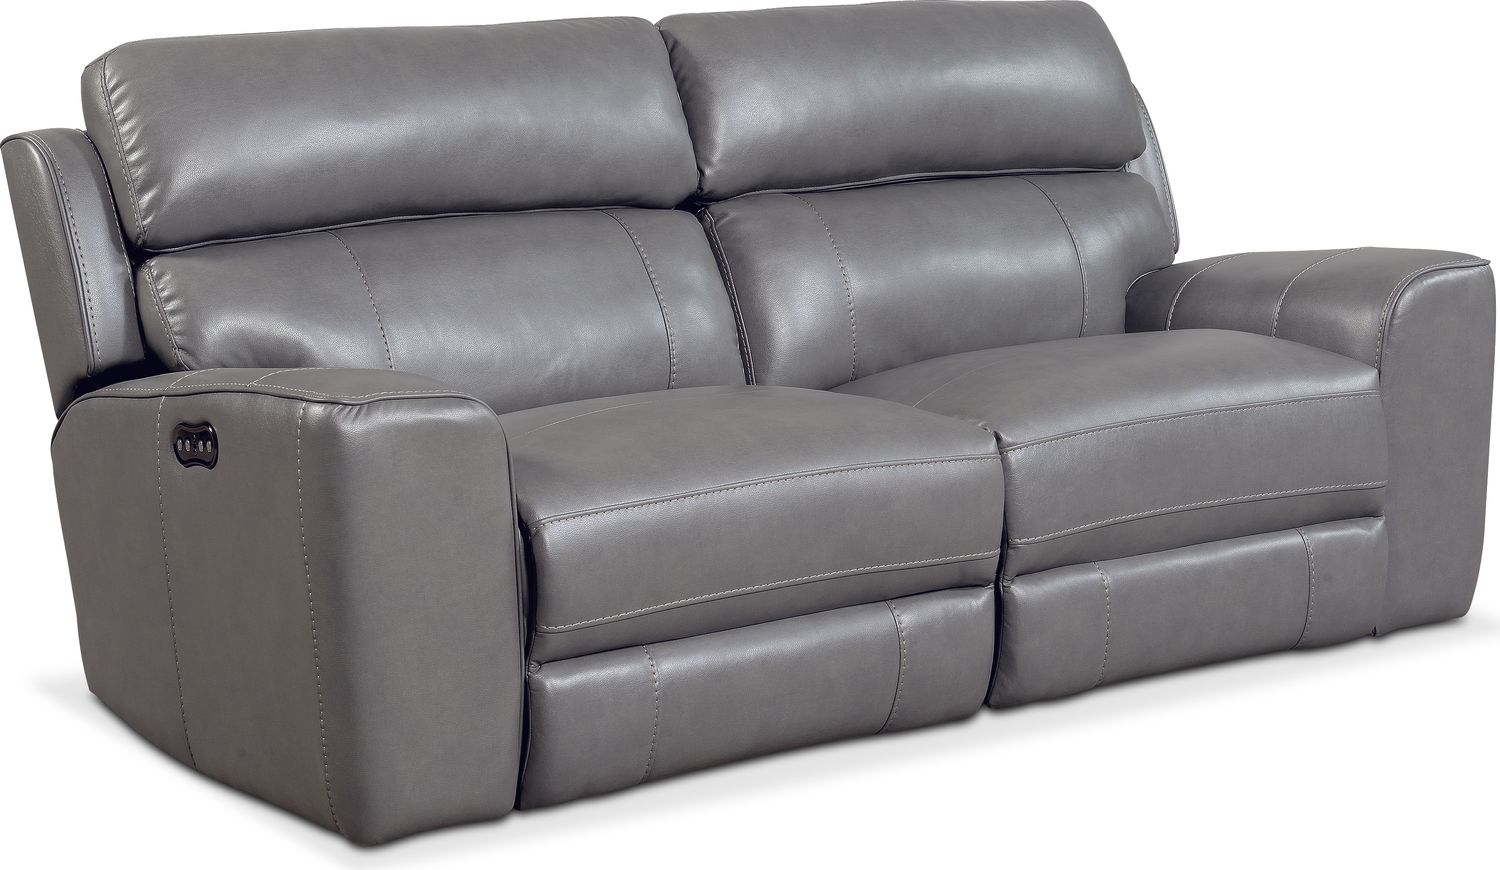 Living Room Furniture - Newport 2-Piece Power Reclining Sofa - Gray